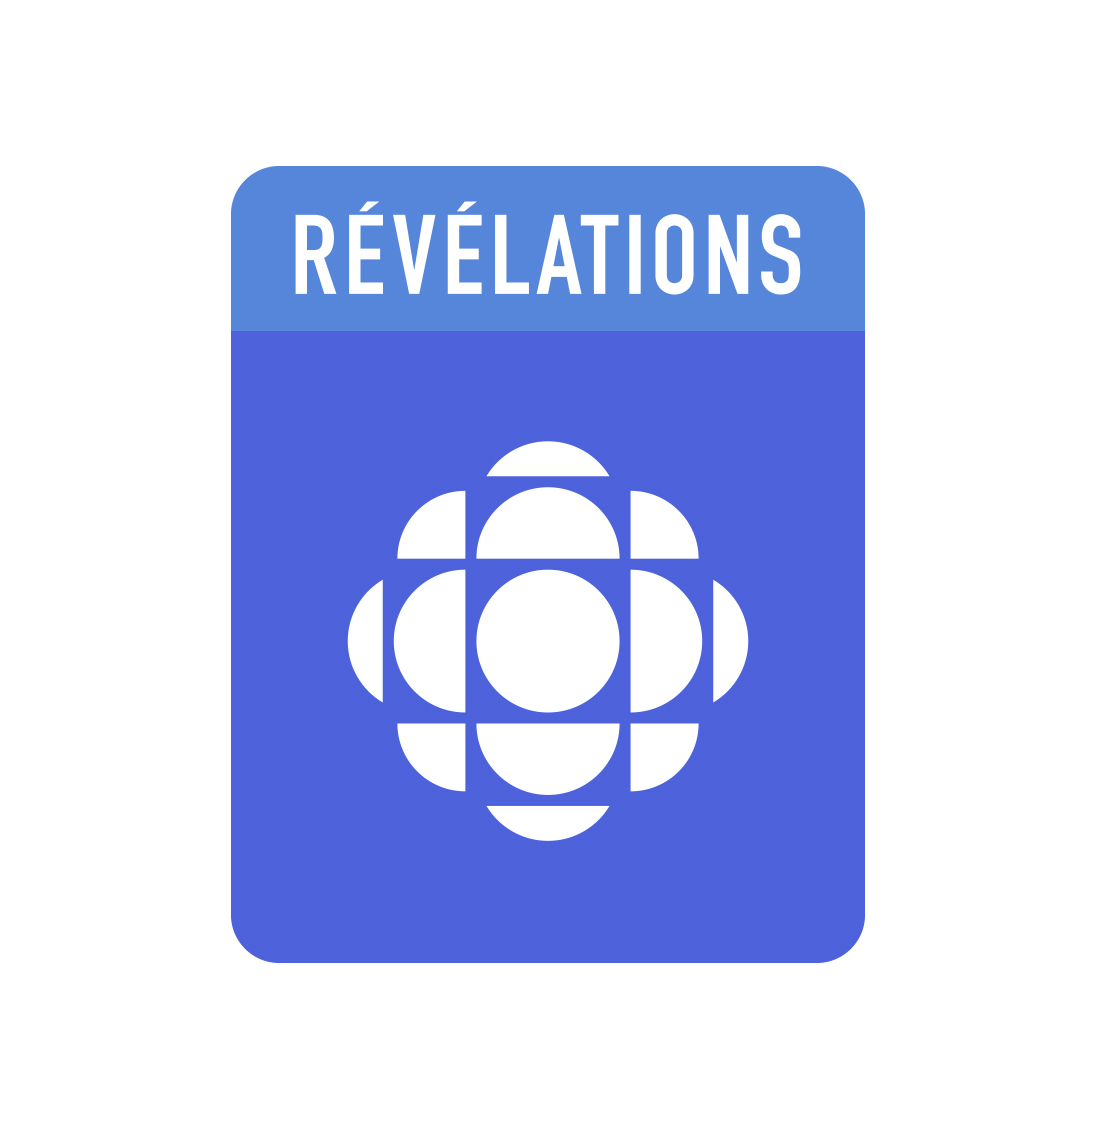 Logo revelations final rvb